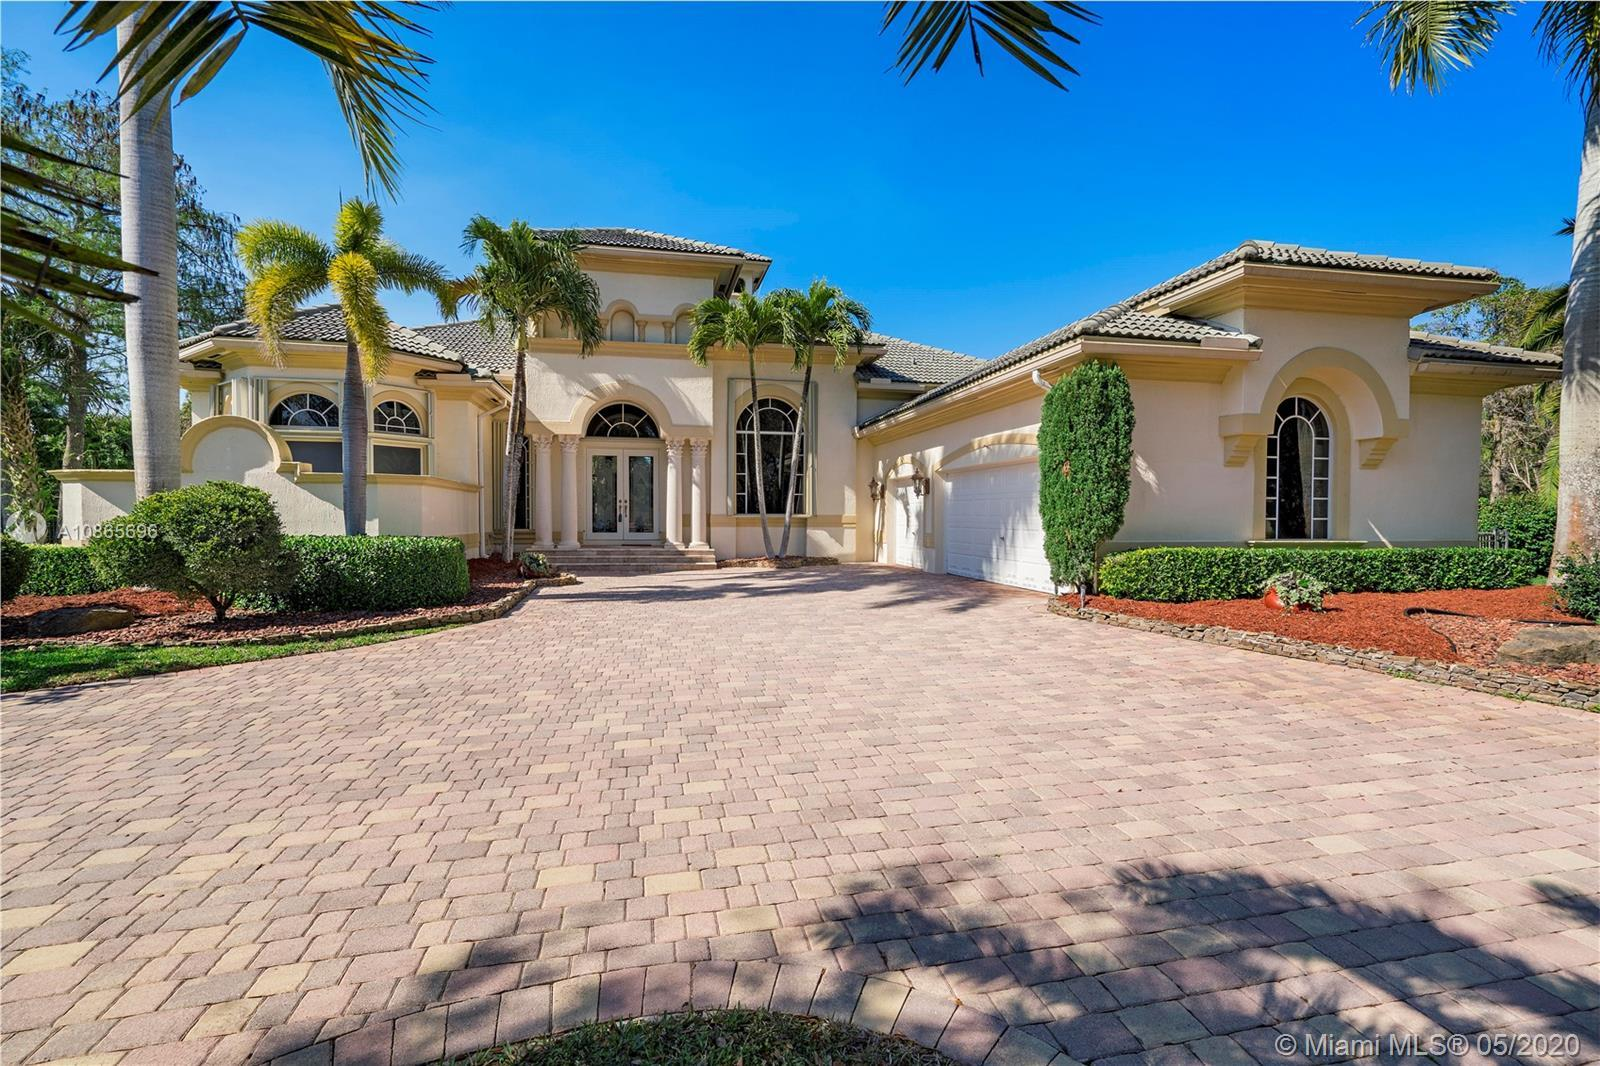 Pride of Ownership is evident as soon as you walk into this exquisite custom built home in Grand Cyp